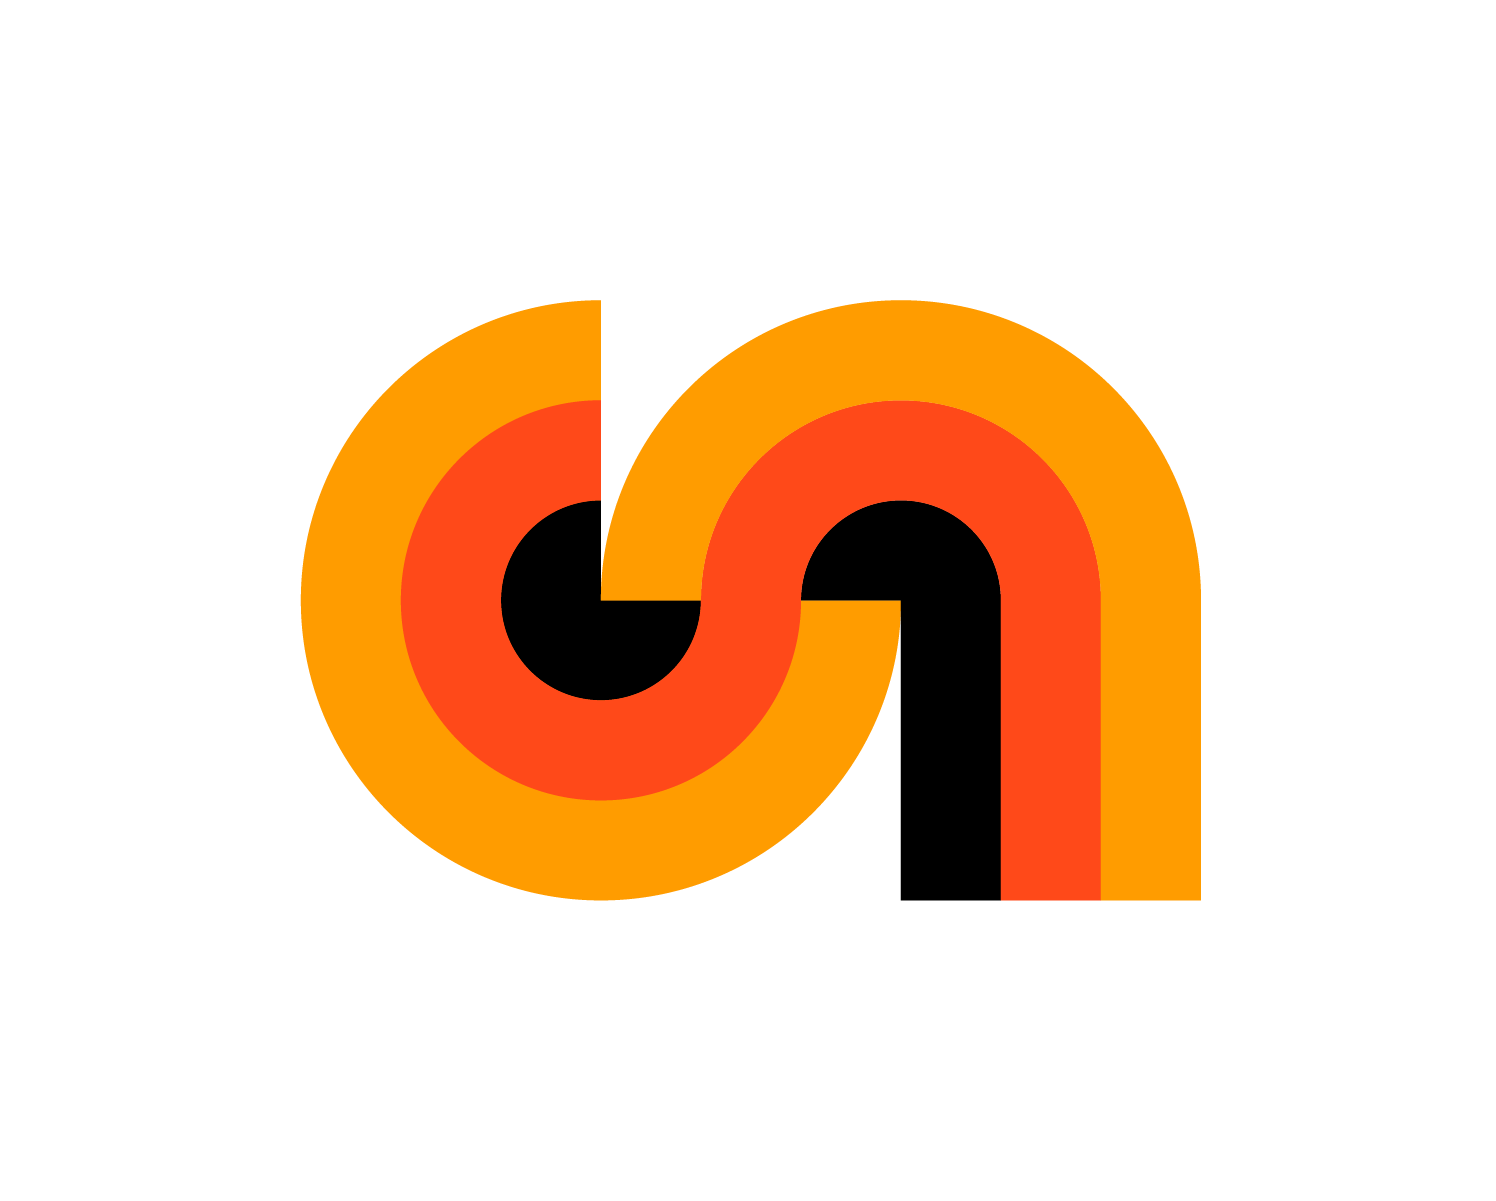 Claim Our Space Now color logo, no text